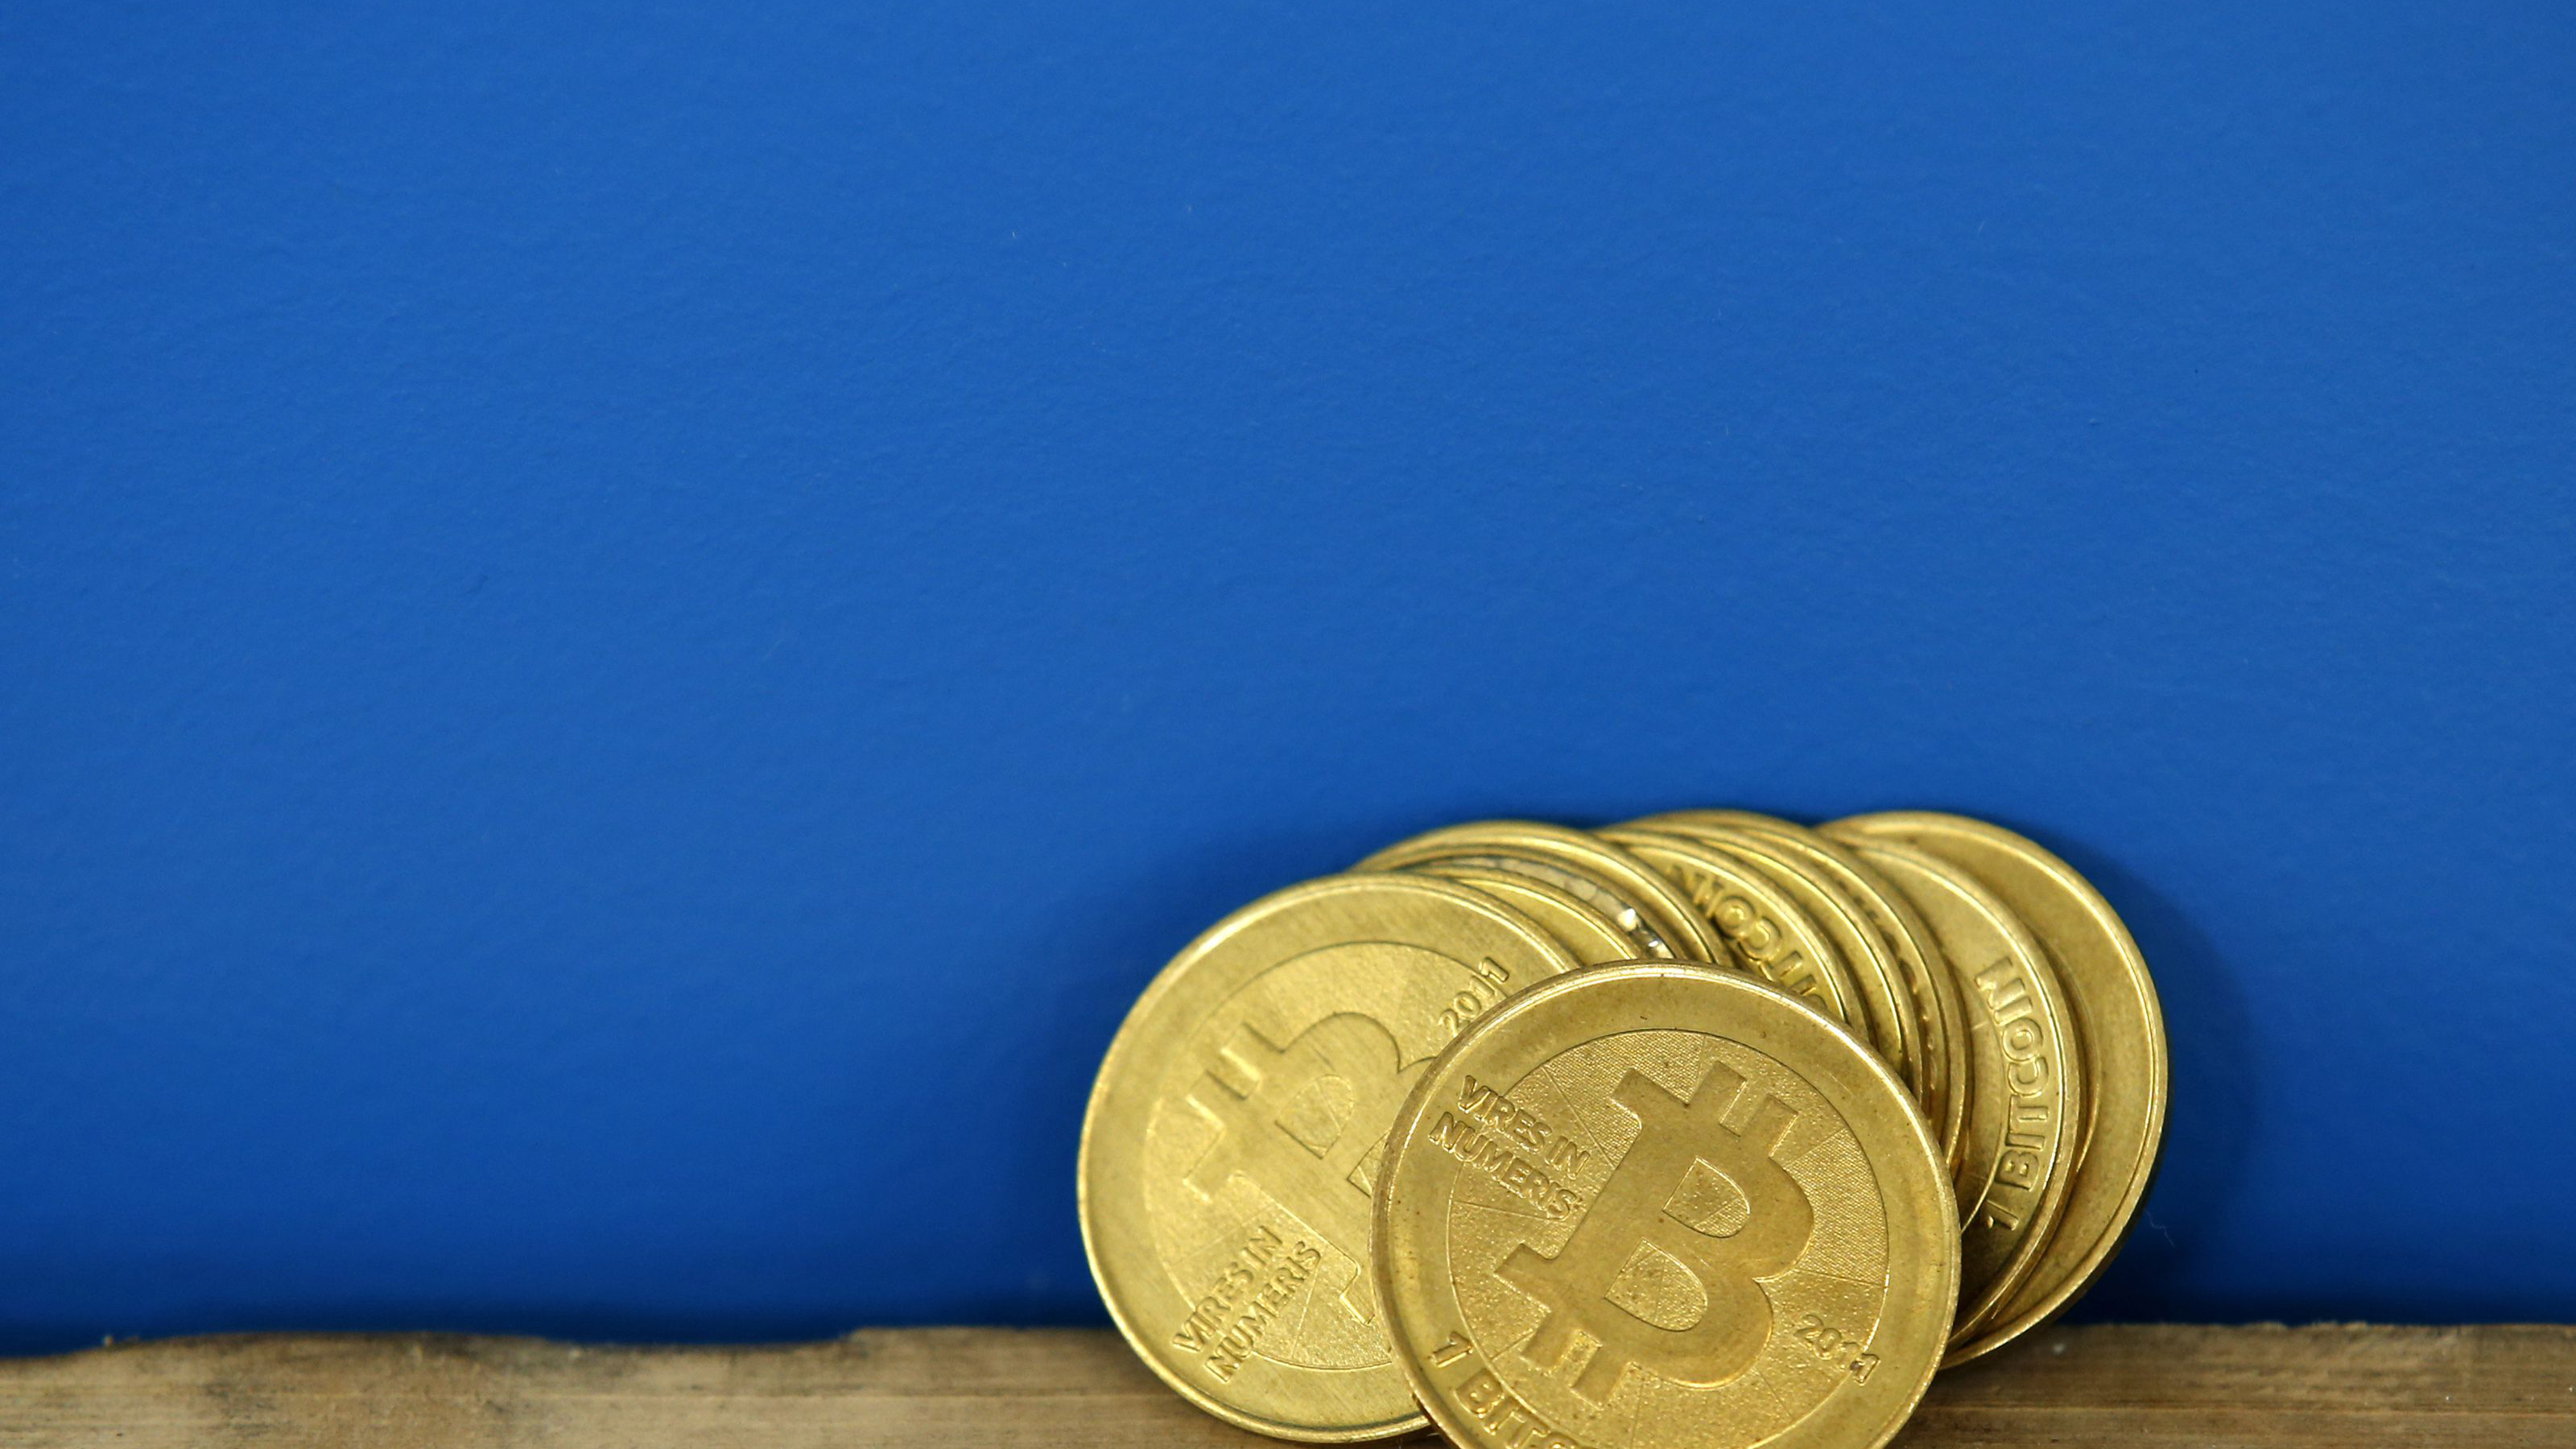 Hacker breaks into Bitcoin founder's email account and